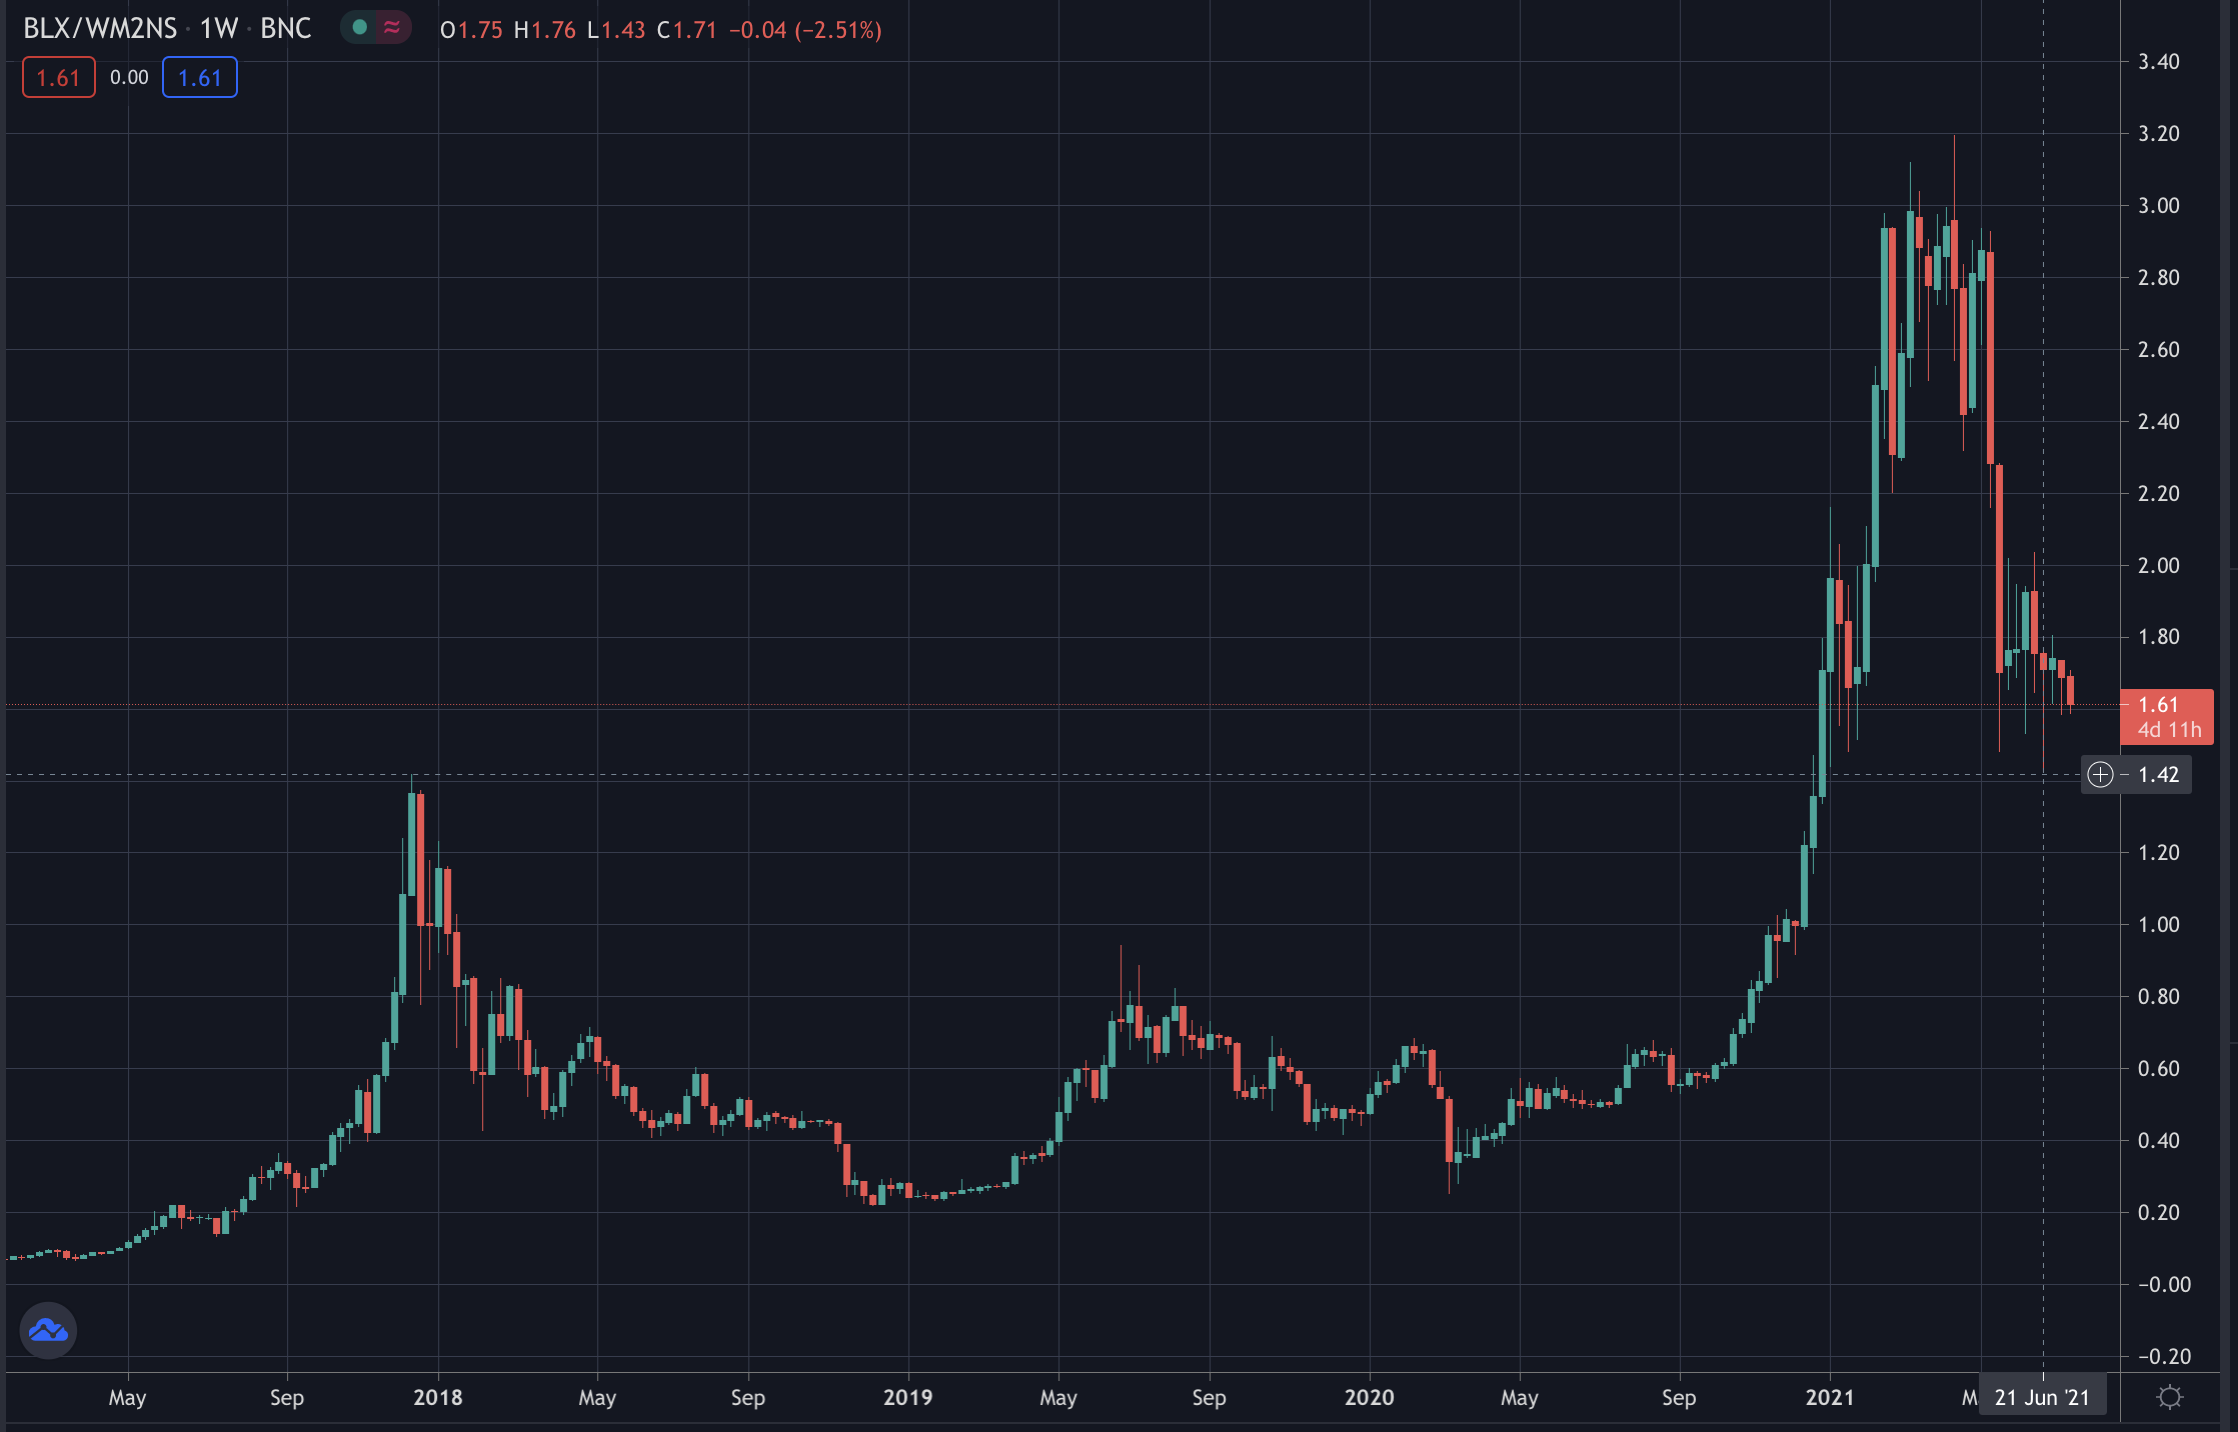 Bitcoin Already Tested 2017 ATH Accounting For Inflation – Trustnodes